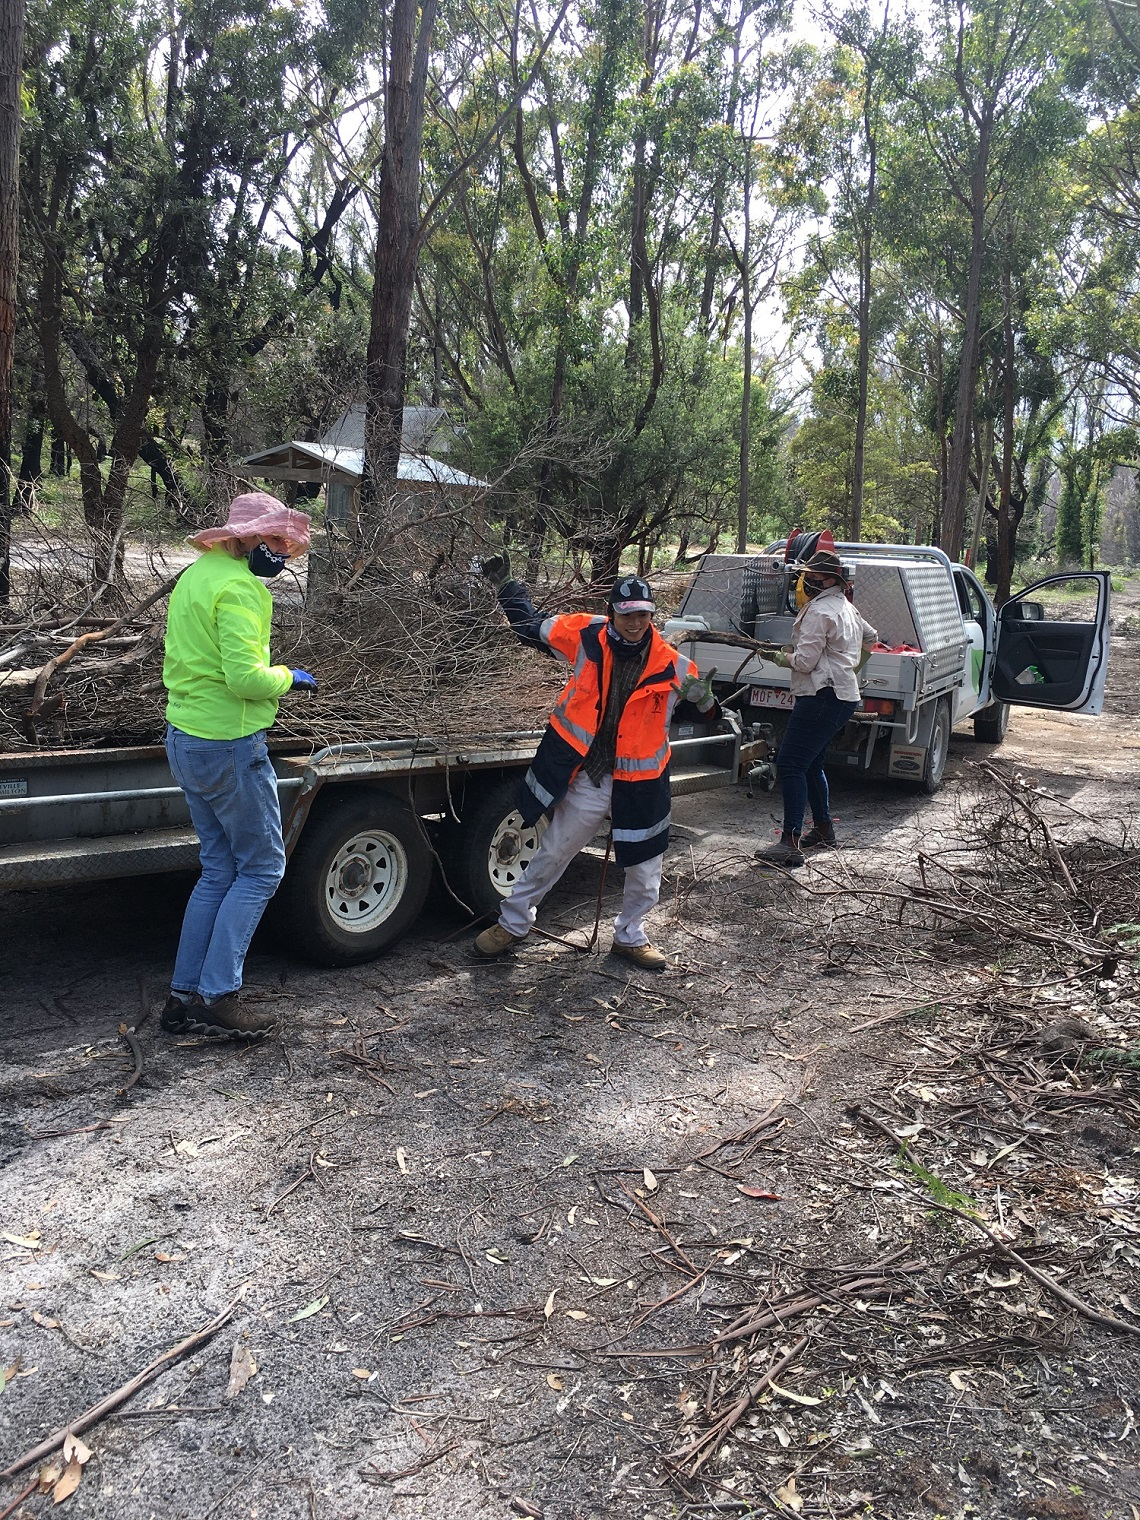 Volunteers enjoying being back to help with bushfire recovery efforts at Cape Conran Coastal Park